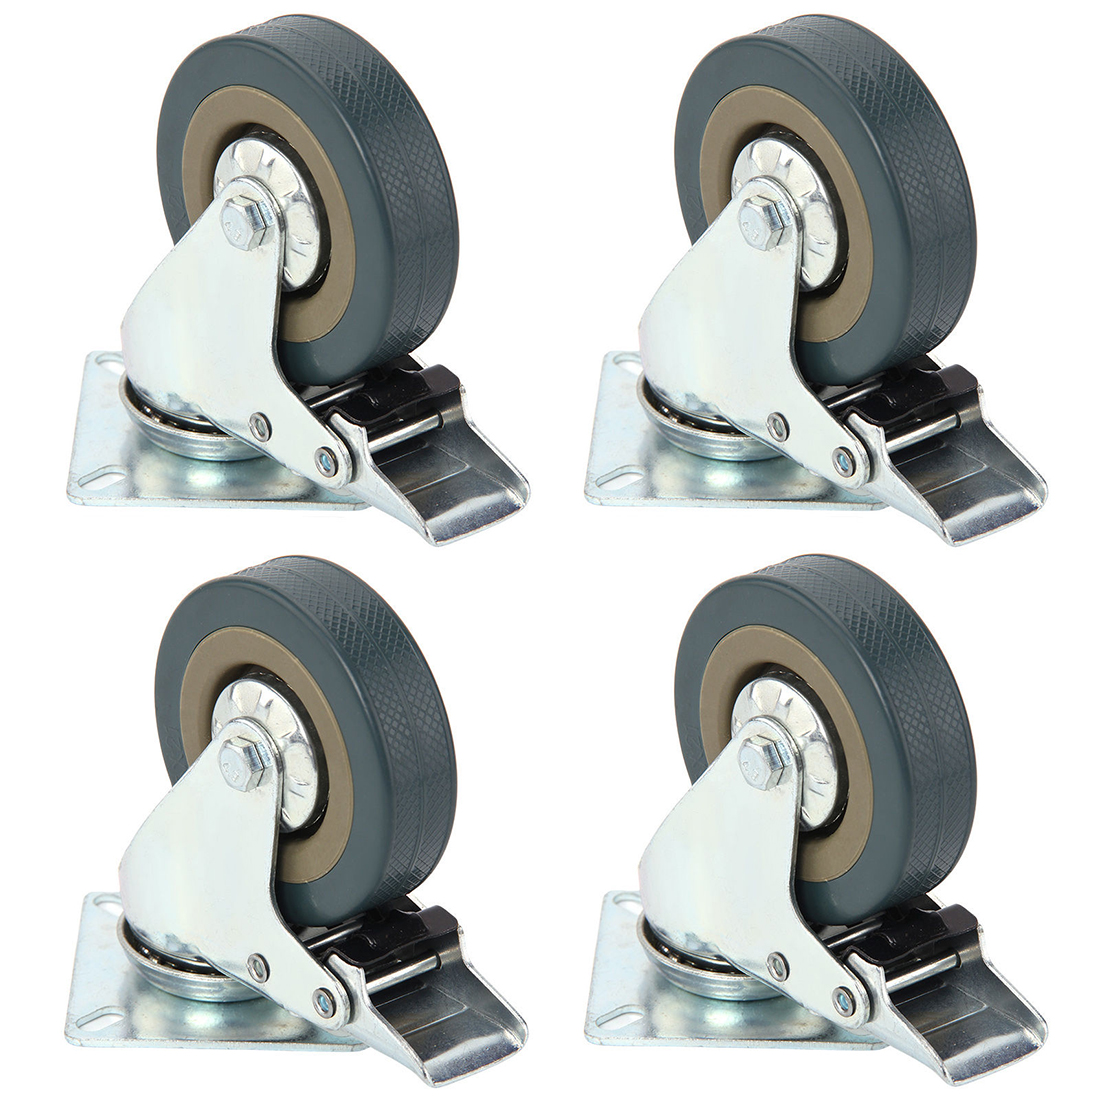 4 Pcs Heavy Duty 75x21mm Rubber Swivel Castor Wheel Trolley Caster Brake 50KG Solid Rubber 360 Degree Rotation Wheels With Brake new 4 swivel wheels caster industrial castor universal wheel artificial rubber heavy casters brake 360 degree rolling castors